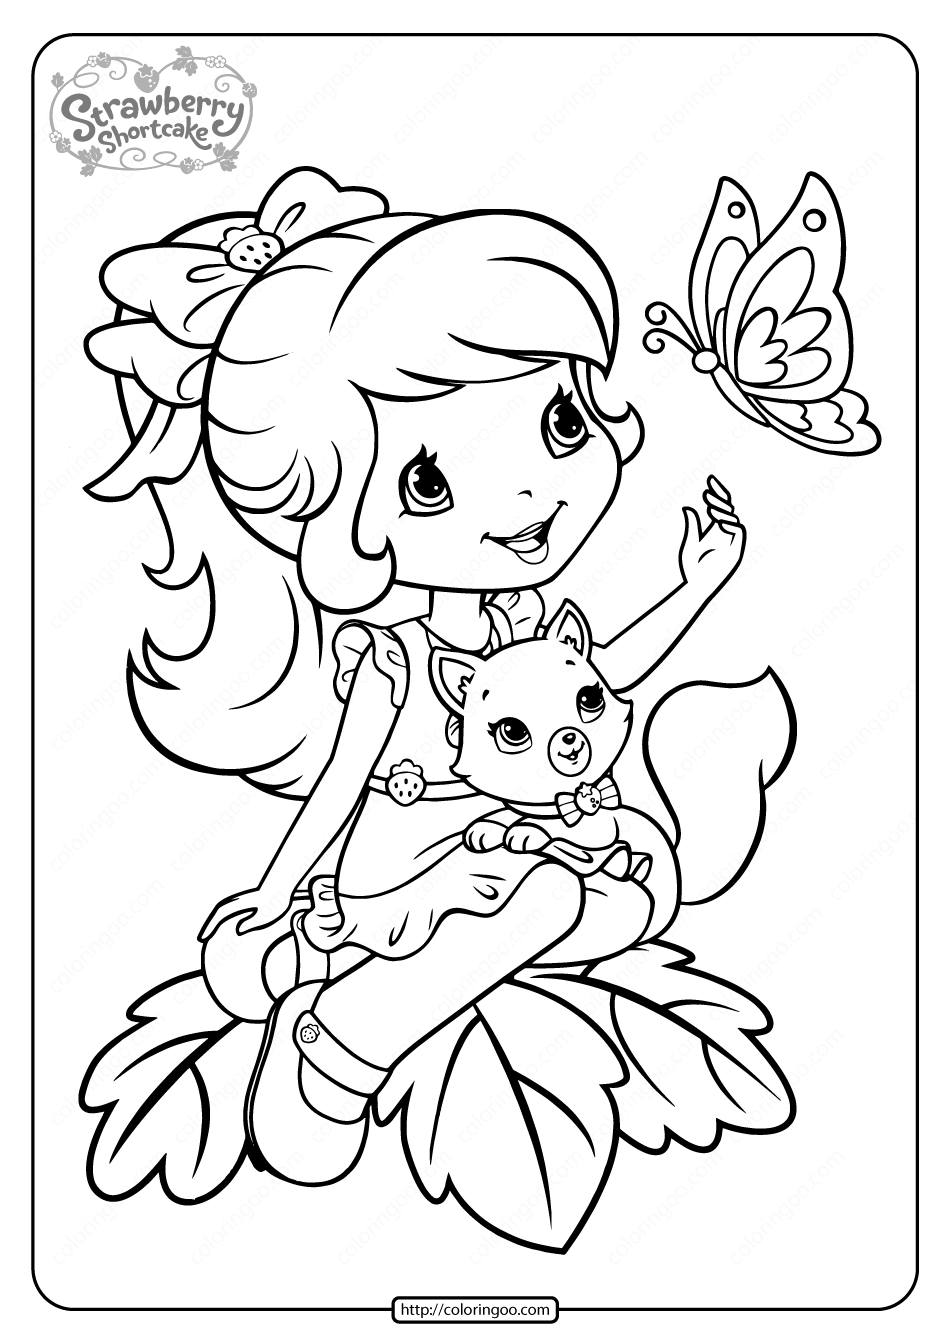 Printable Strawberry Shortcake Coloring Pages 13